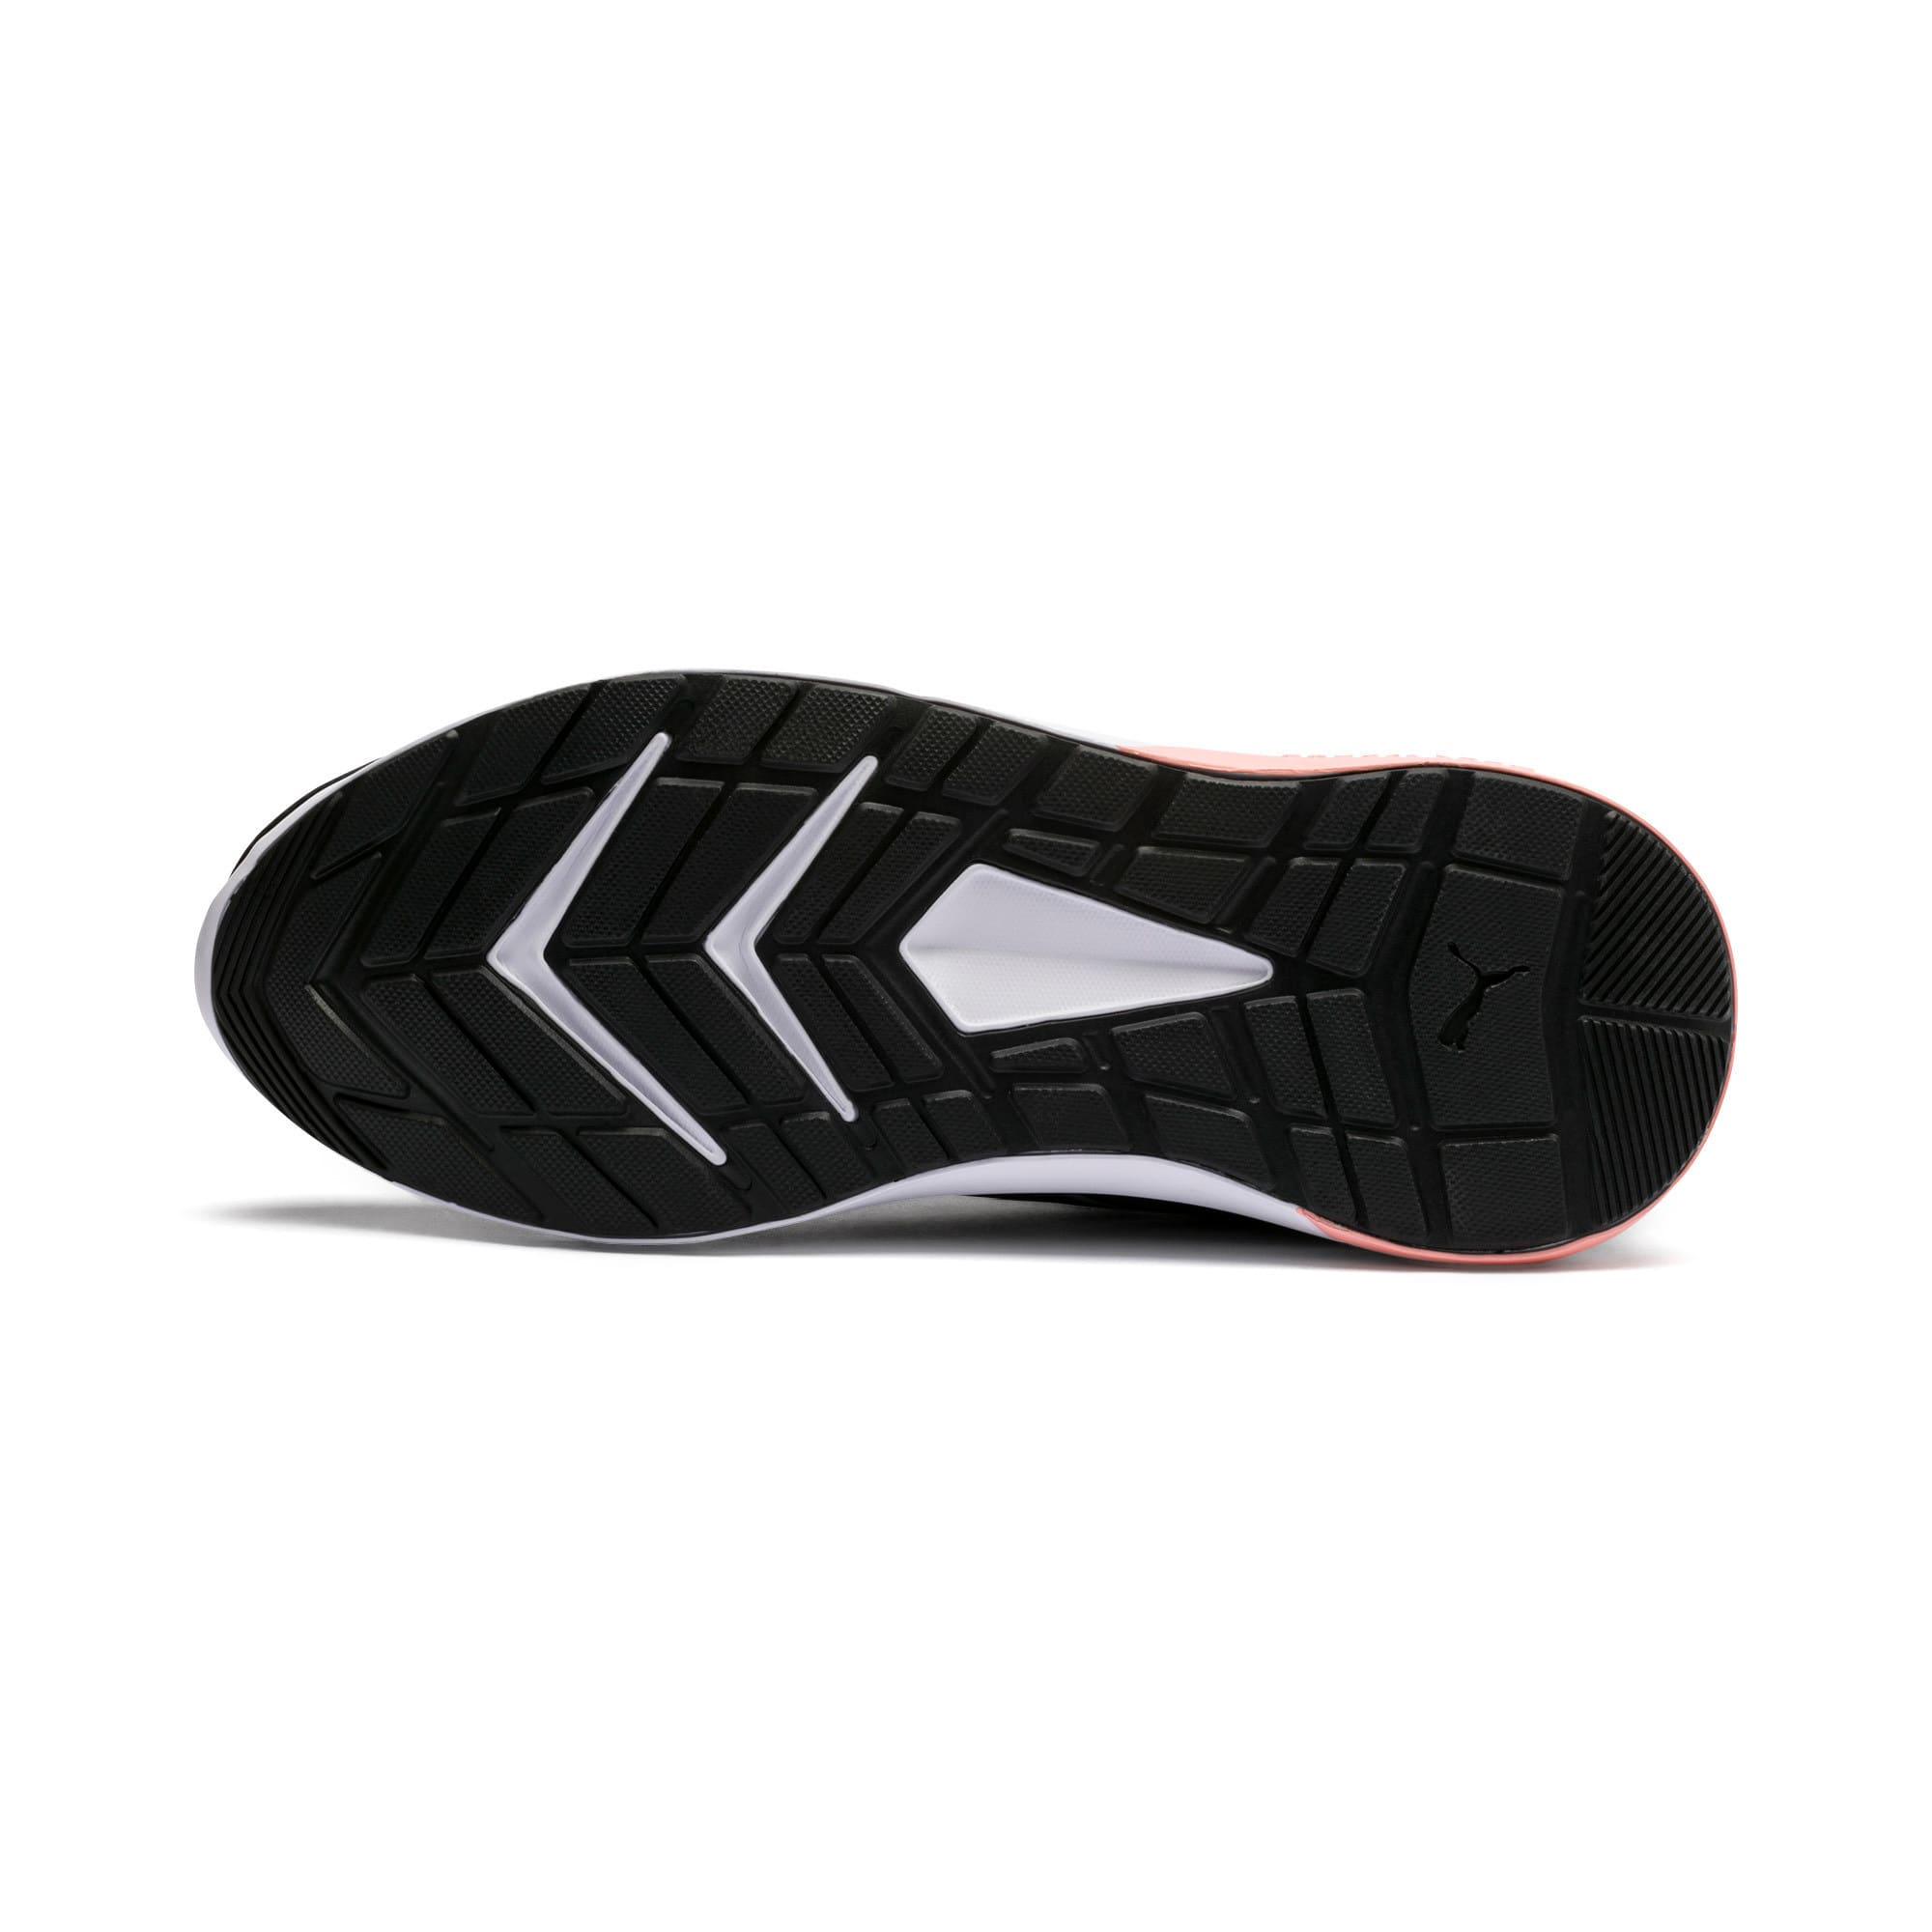 Thumbnail 4 of Escaper Tech Sneakers, Black-Silver-White-Peach Bud, medium-IND